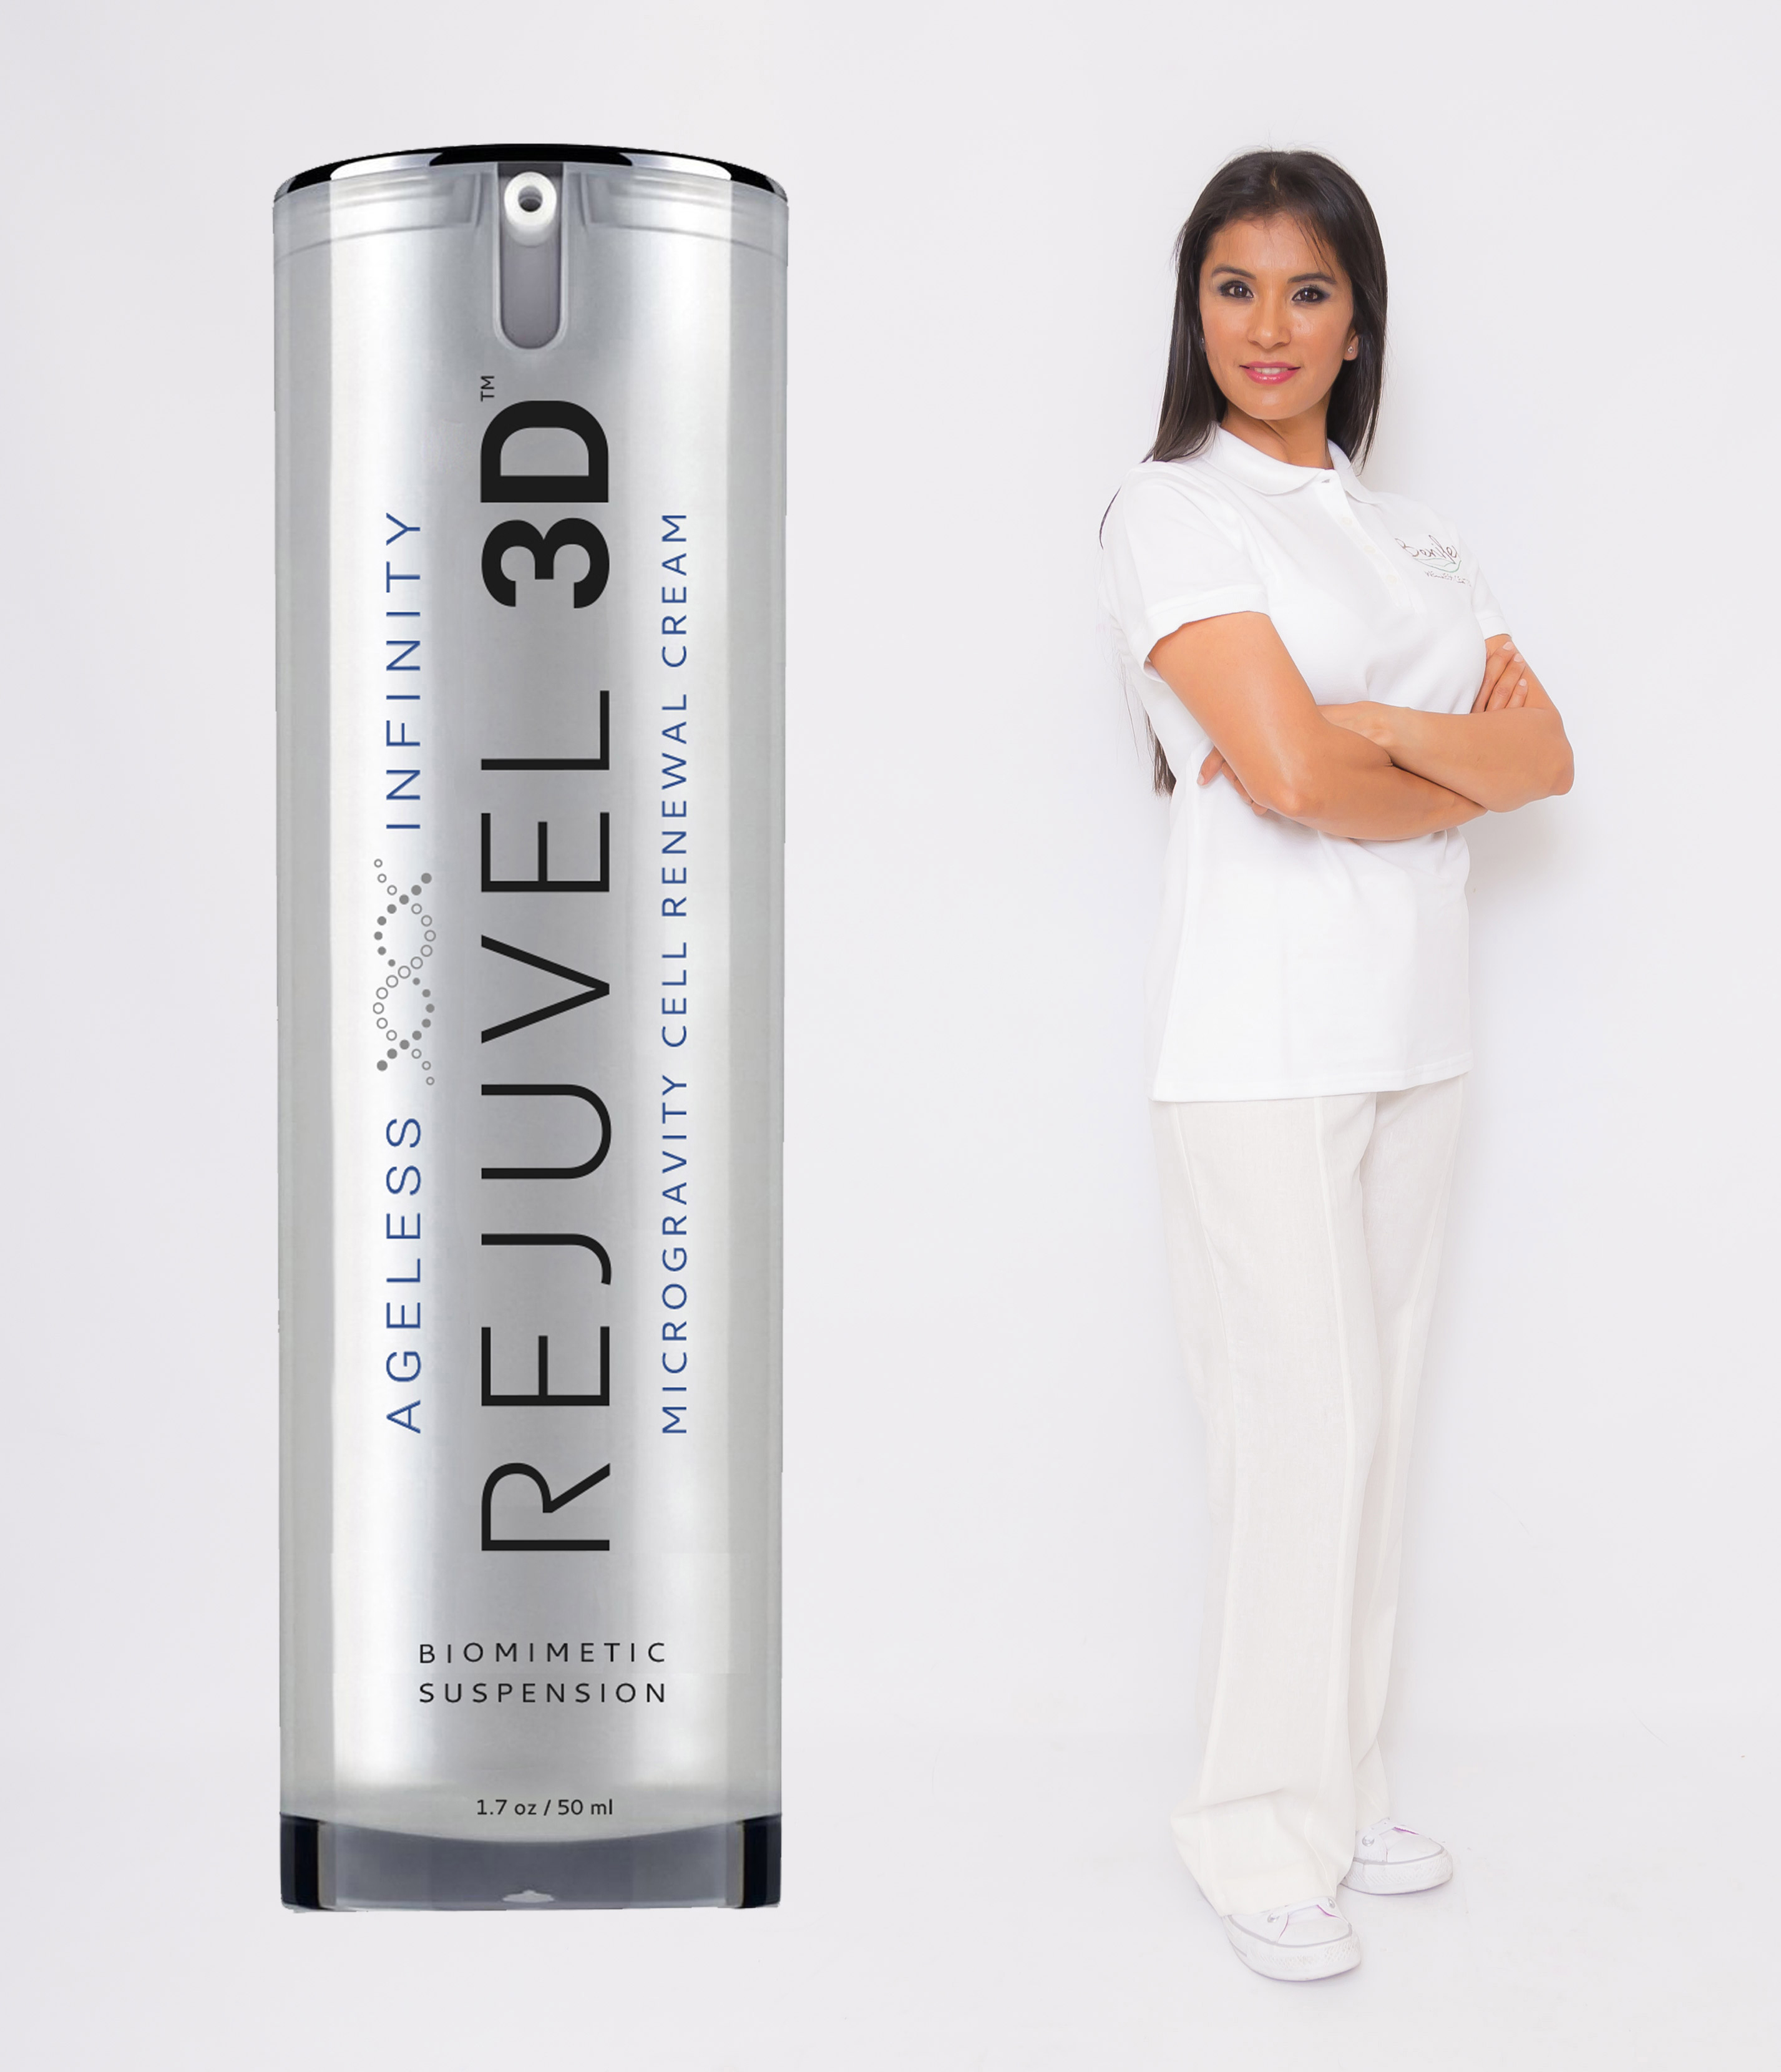 """""""My spa has more than 200 members, who come in once or twice a month. I know their skin very well. Rejuvel was able to improve skin that I had been trying to change for years. I love the product — and my clients crave it."""" - Beniley Llorens. (Photo: Business Wire)"""